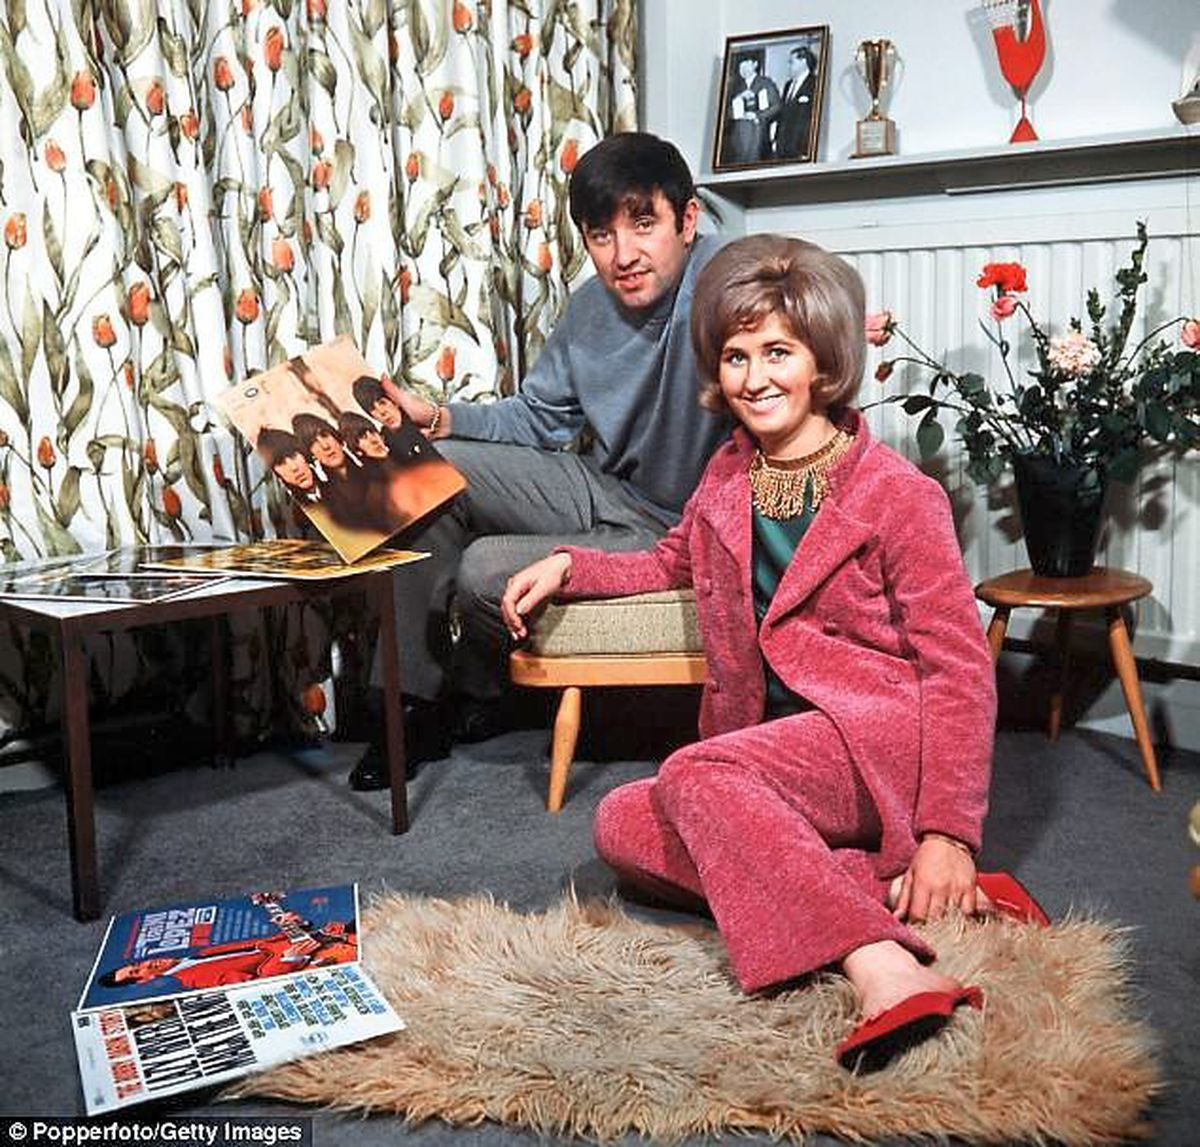 Swinging sixties – Tarby and wife Pauline in the 60s